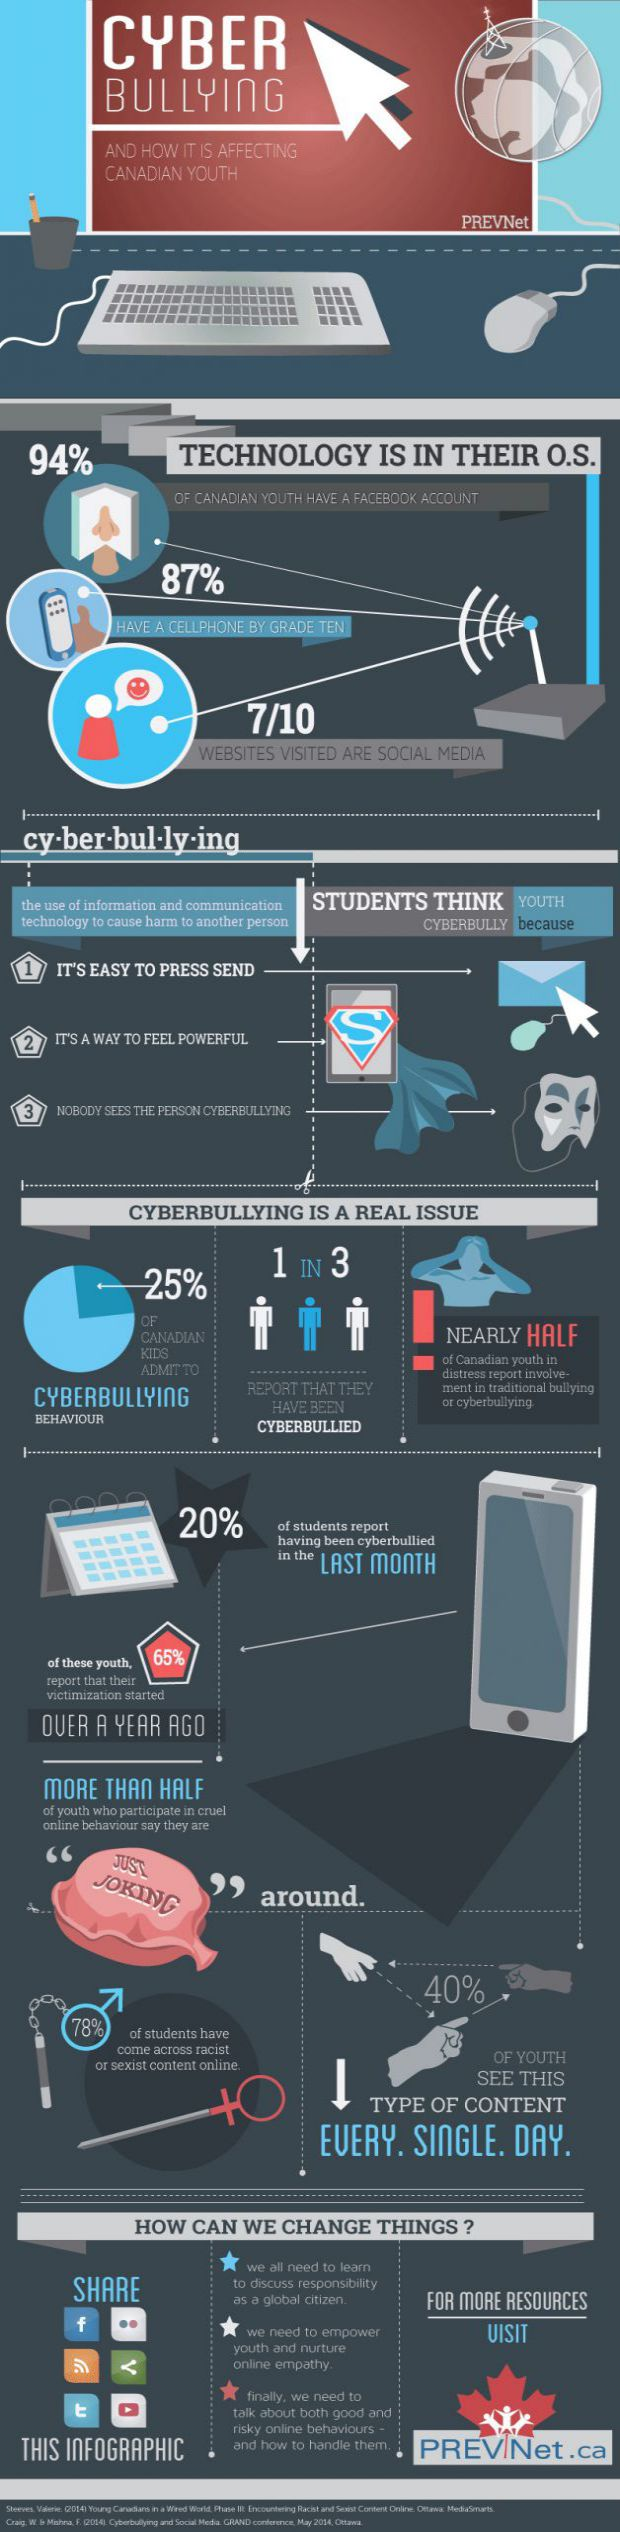 PREVNet's Cyberbullying Infographic